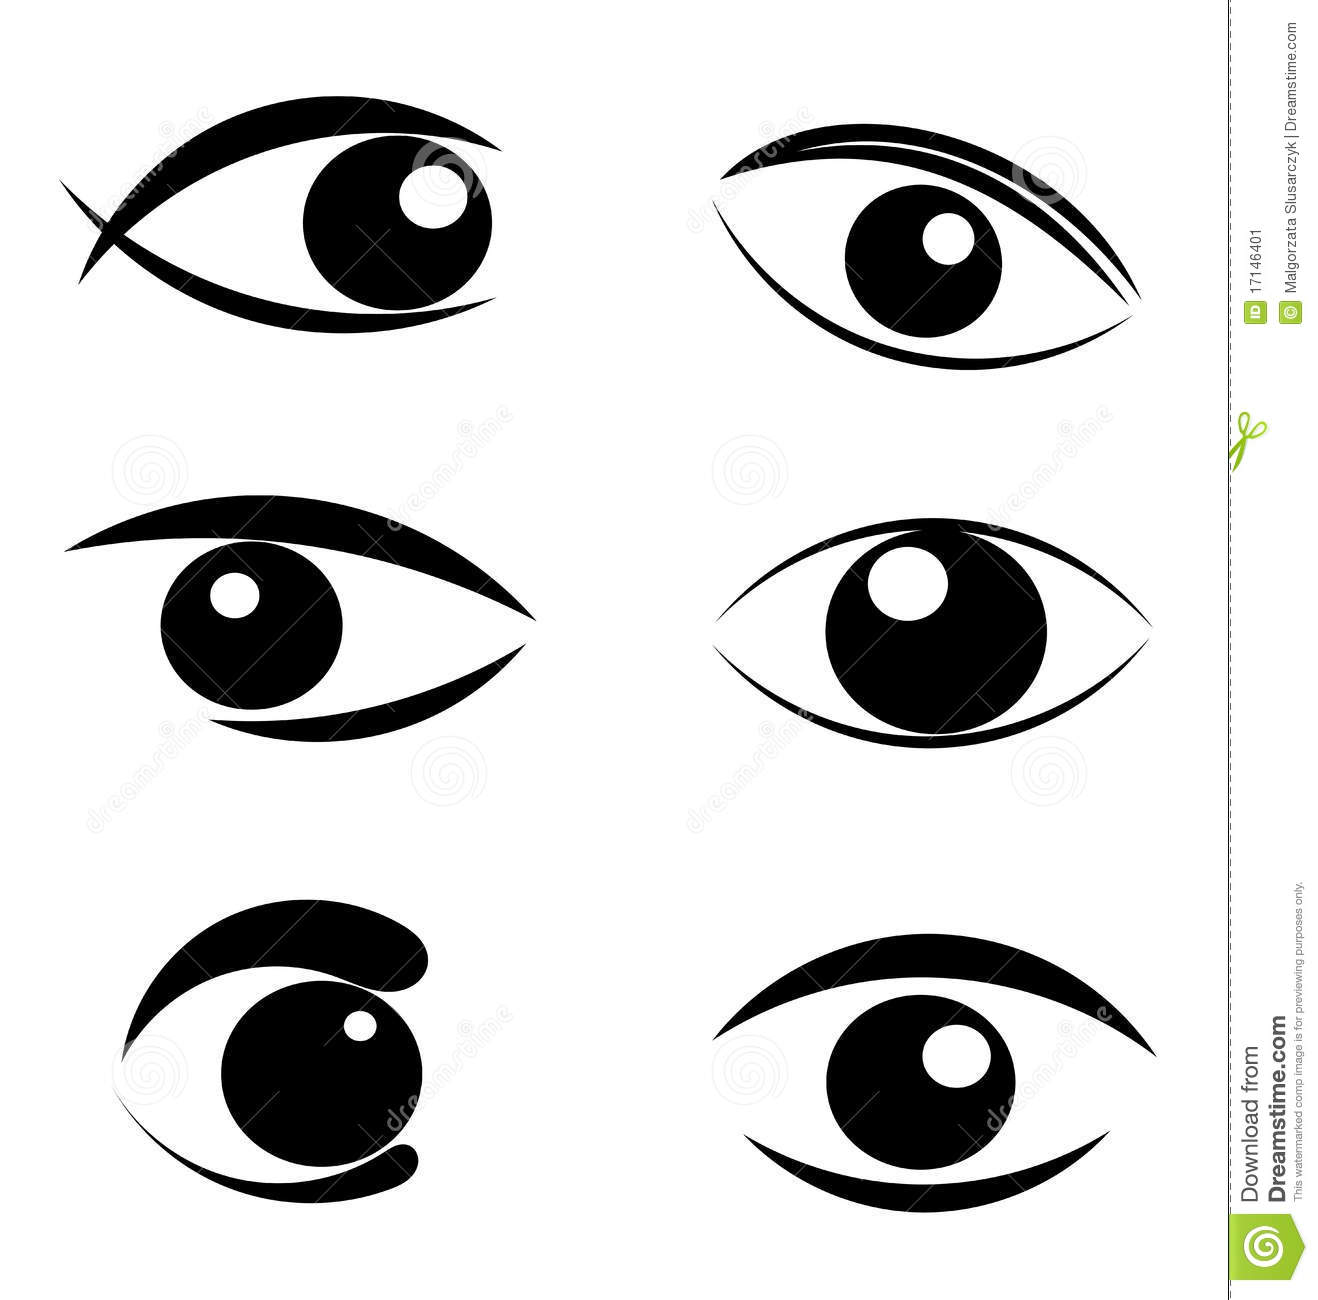 More Similar Stock Images Of Set Of Eyes Symbols #tpNS40 ...